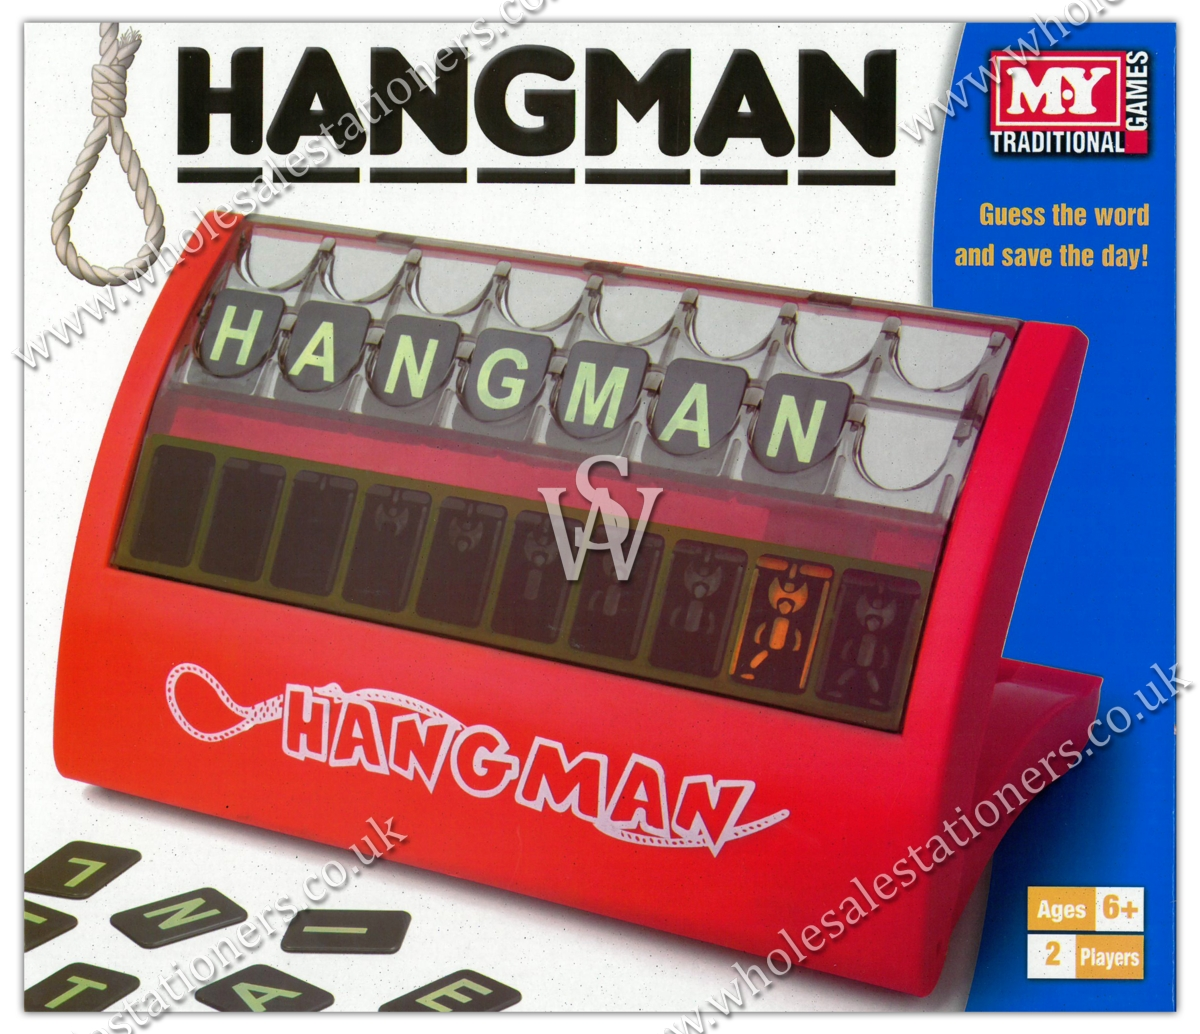 GAME,HANGMAN, 2 Players,Age 6+,MY Bxd